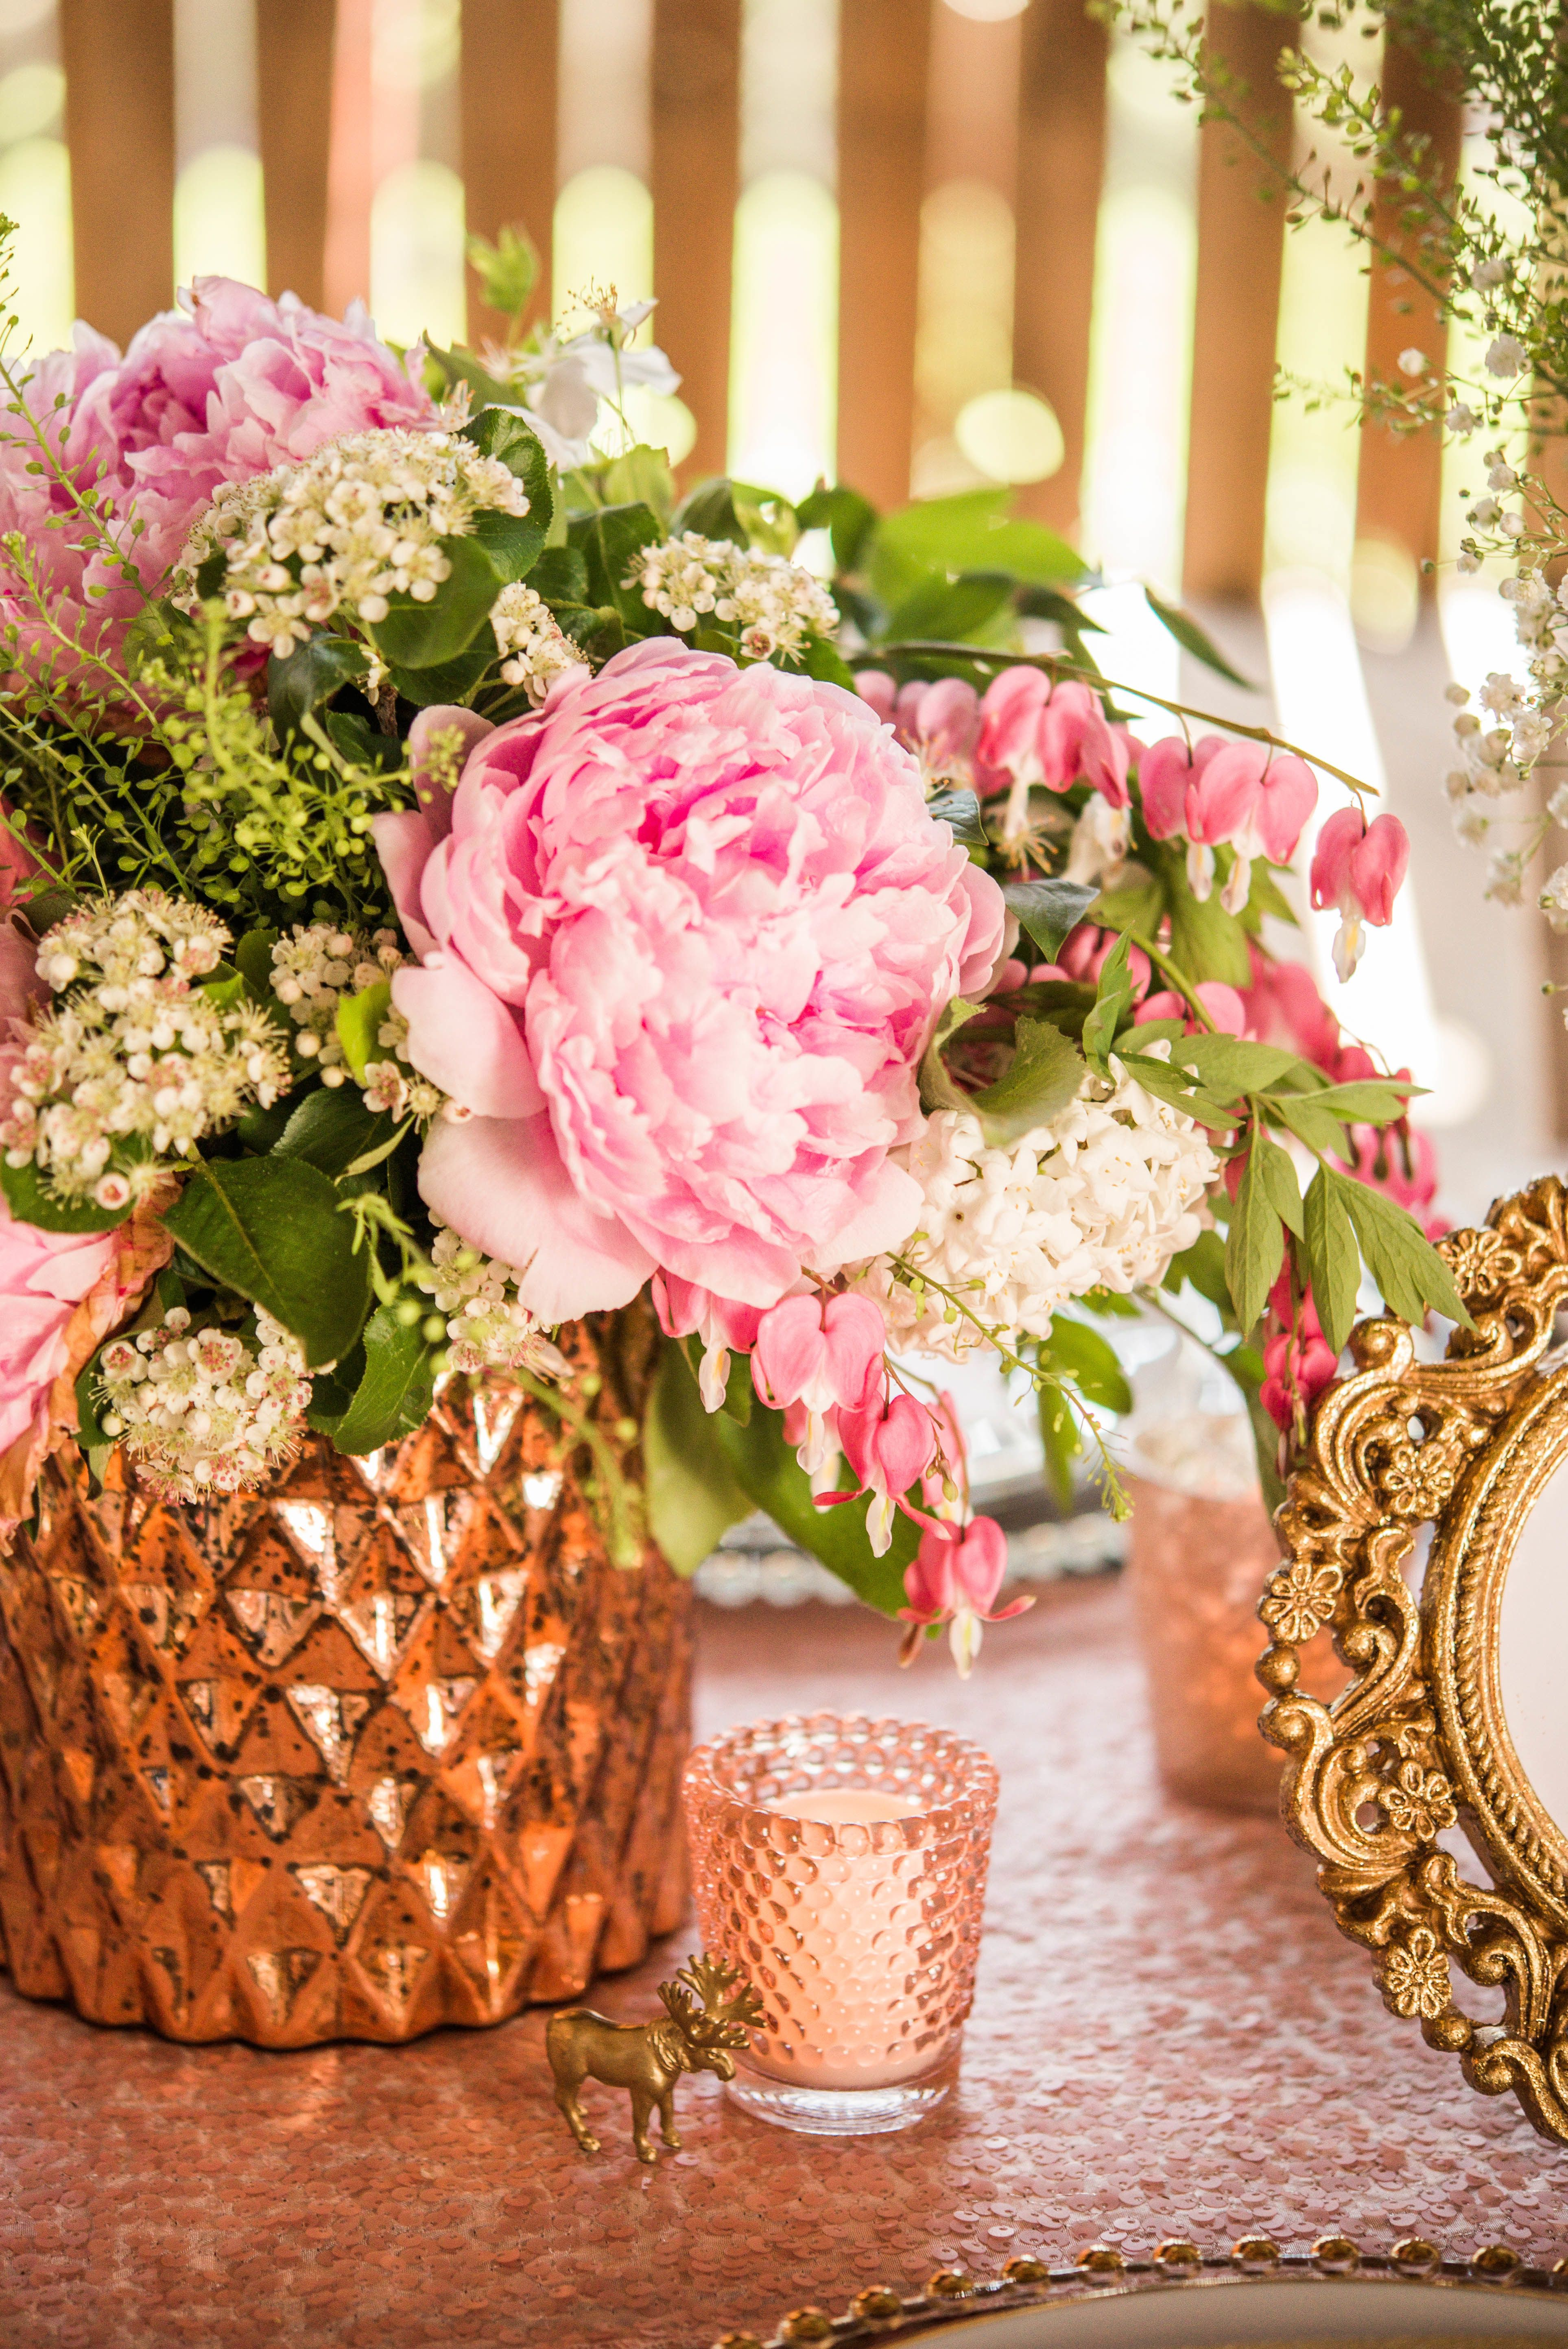 Rustic Chic Farm Shoot at Cambium Farms   Rustic chic, Floral ...